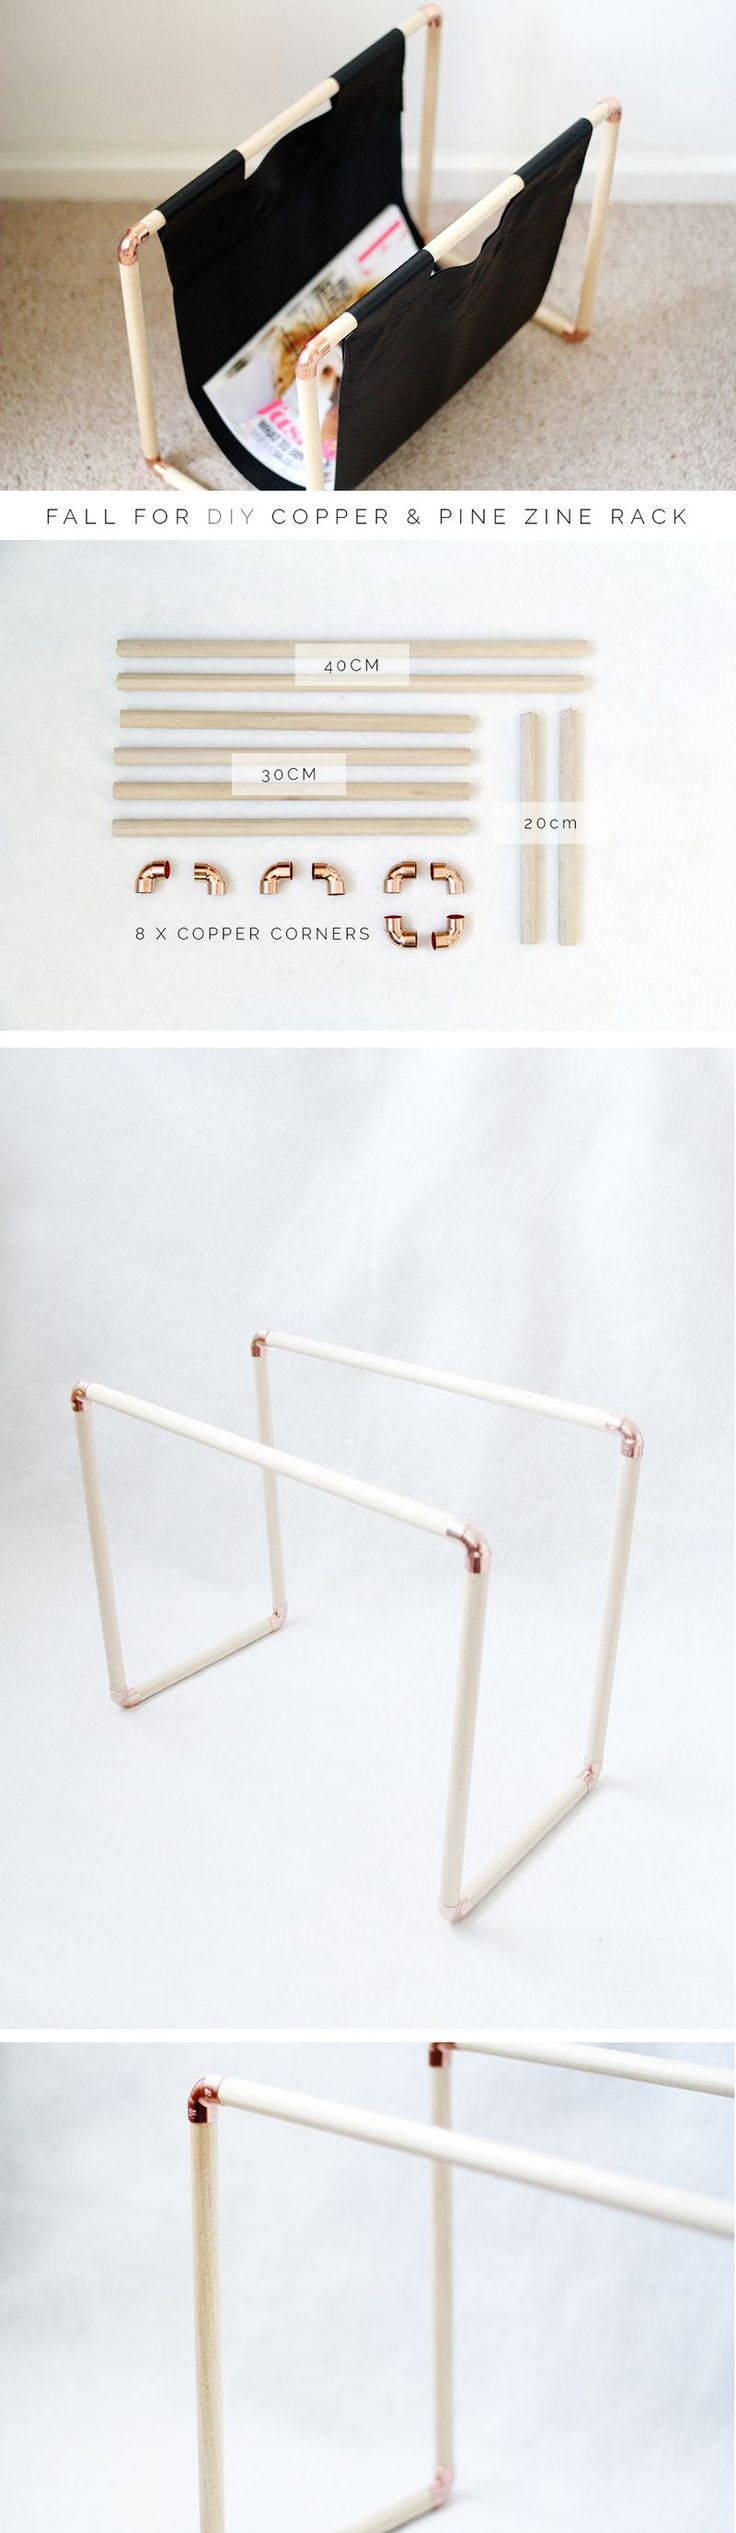 Copper Pipe Magazine/Record Rack Fall For DIY